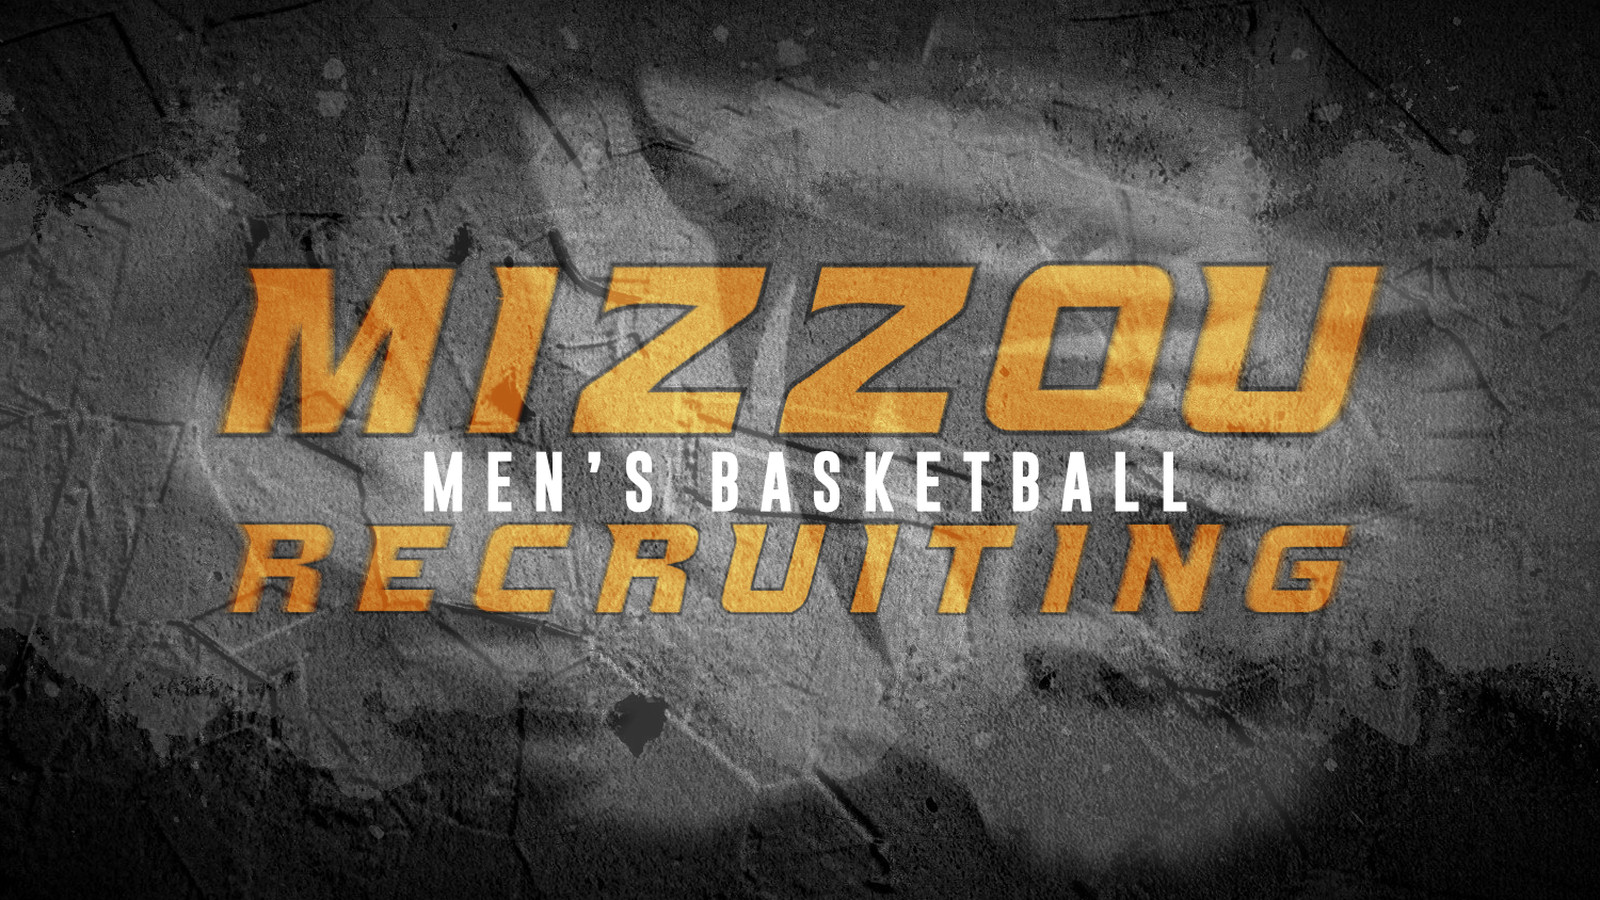 Mizzou_20recruiting_20header_202017.0